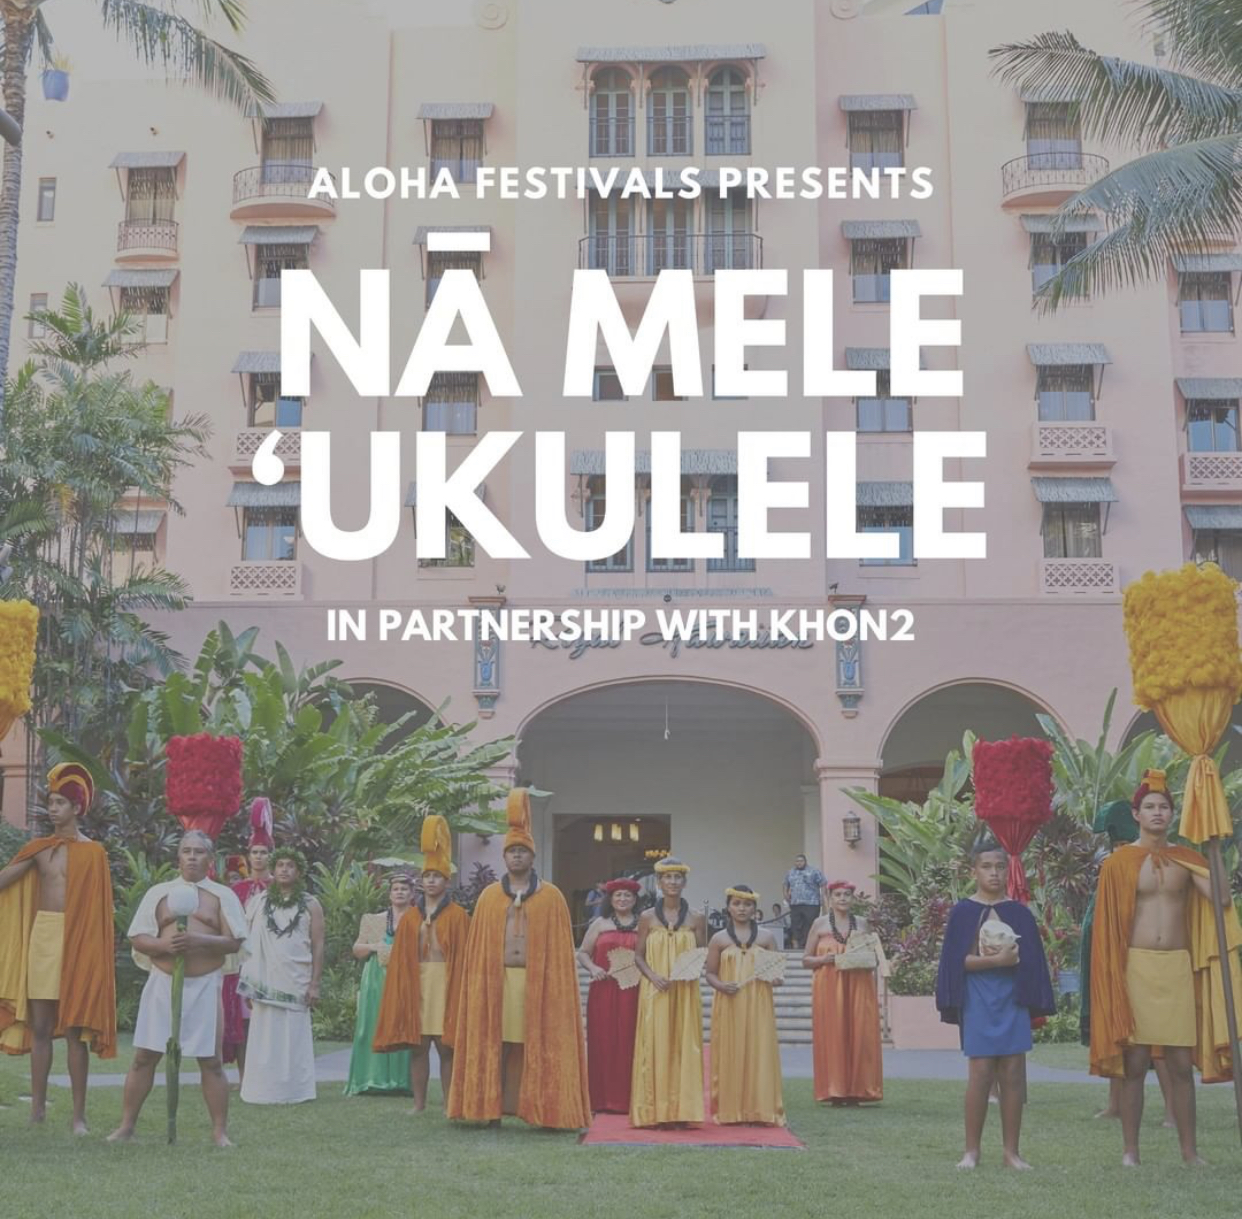 "Aloha Festivals Presents ""Nā Mele 'Ukulele"" in Partnership with KHON2"